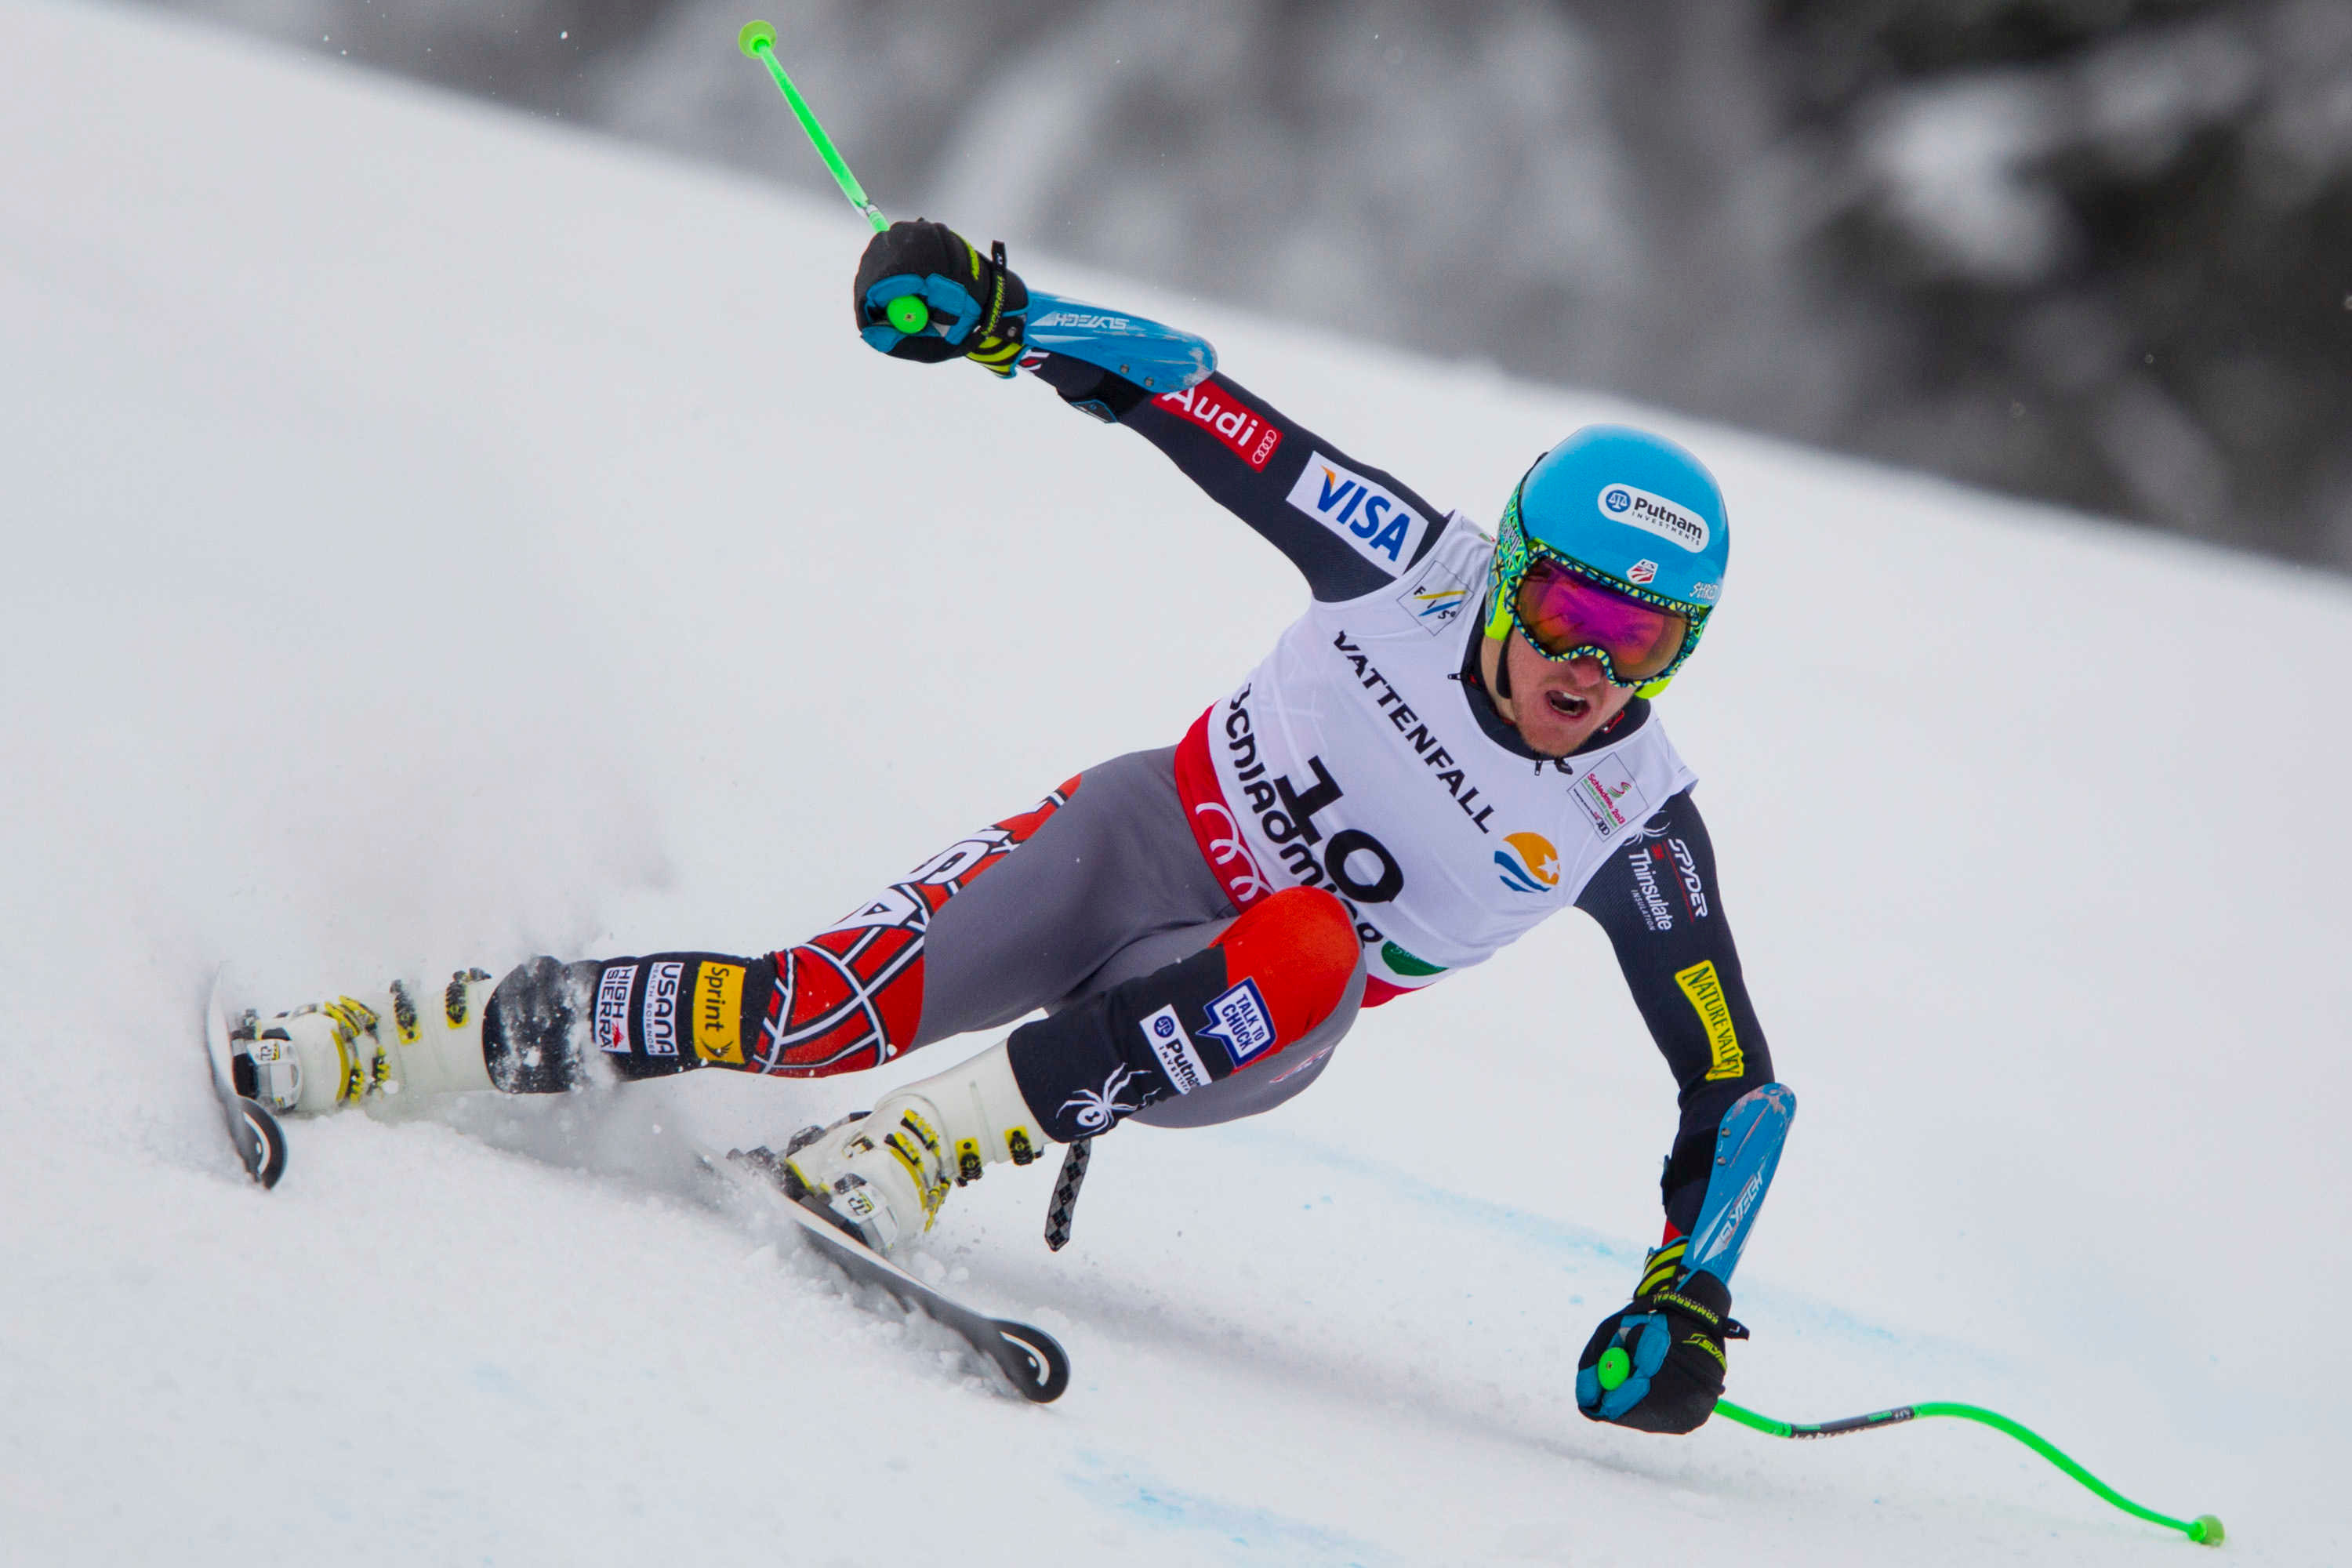 Ted Ligety en route to his first super-G gold. PHOTO: Mitchell Gunn/ESPA